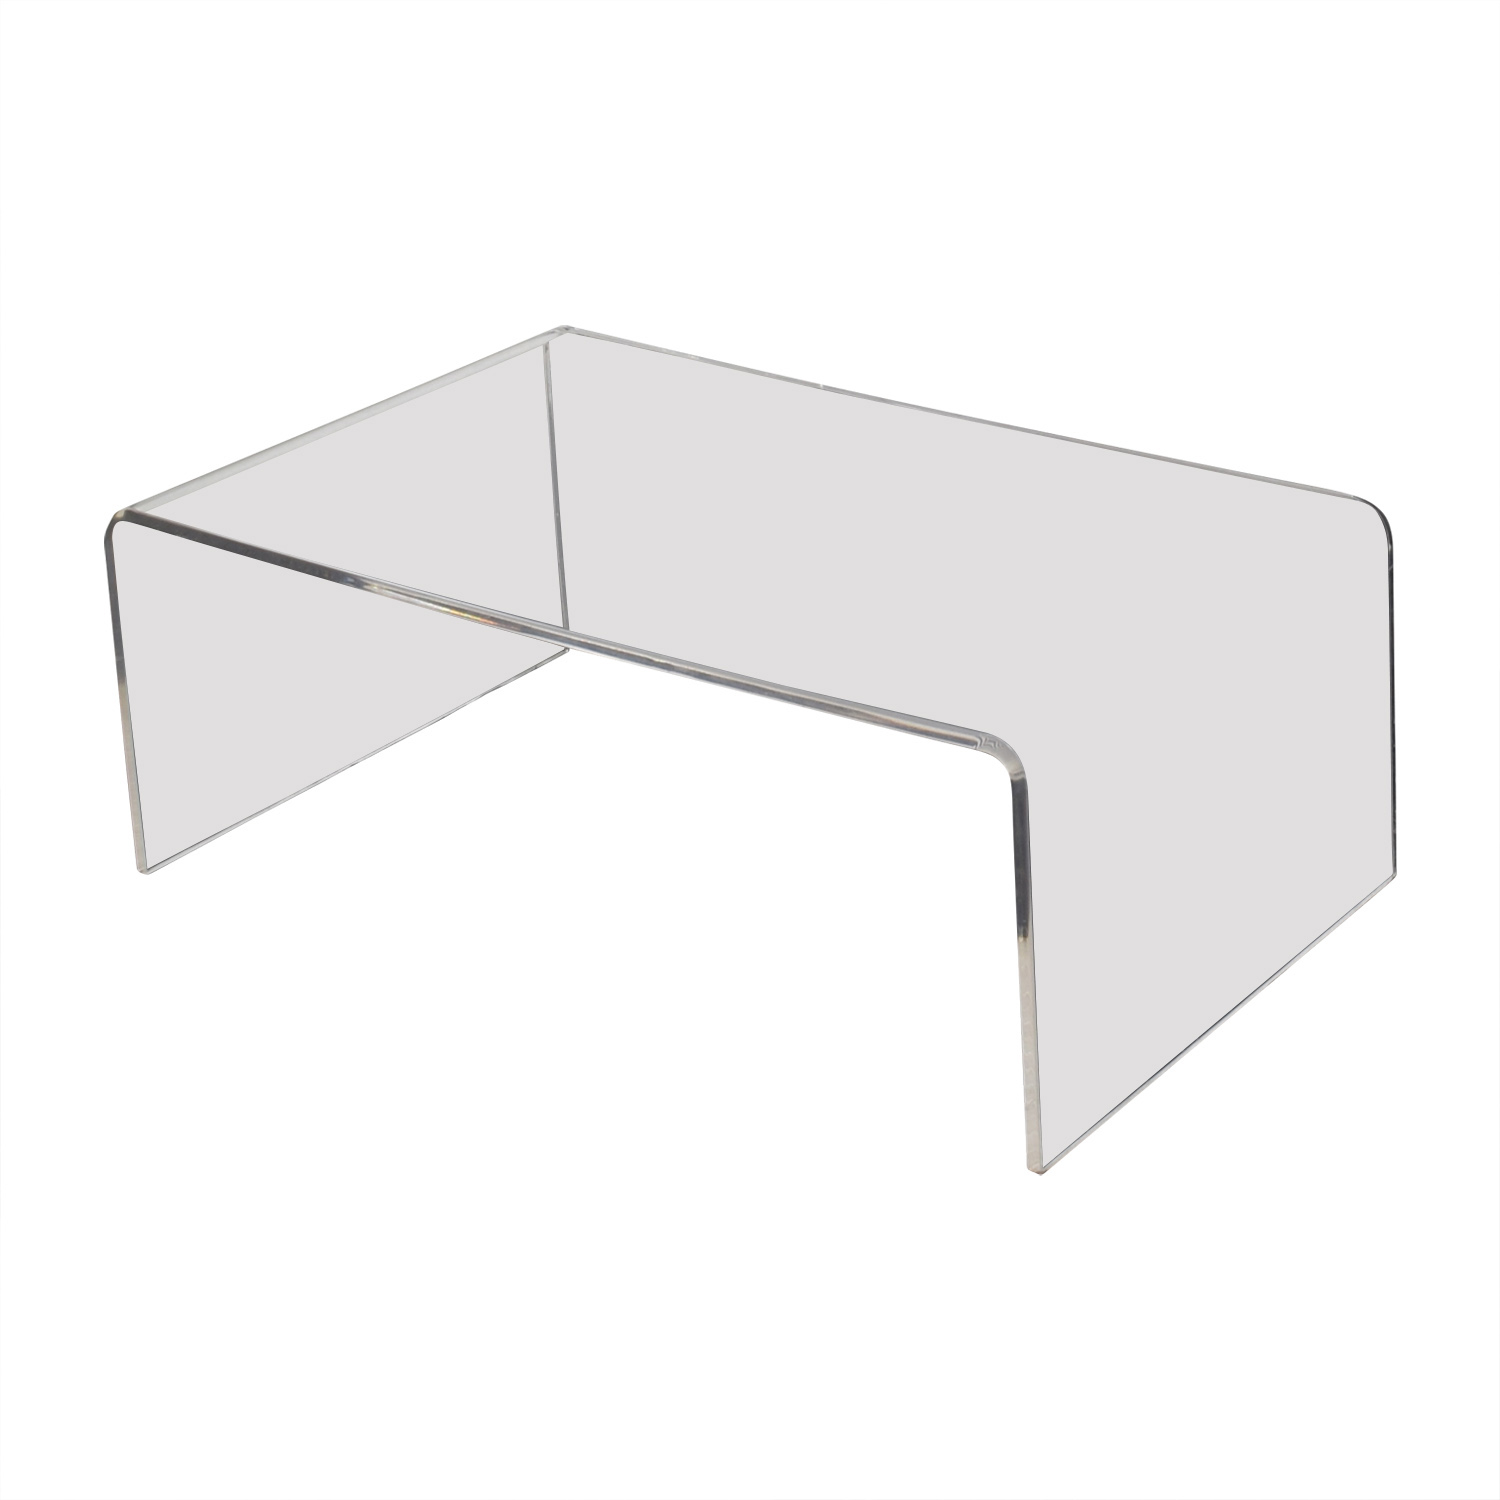 CB2 CB2 Acrylic Ghost Coffee Table discount